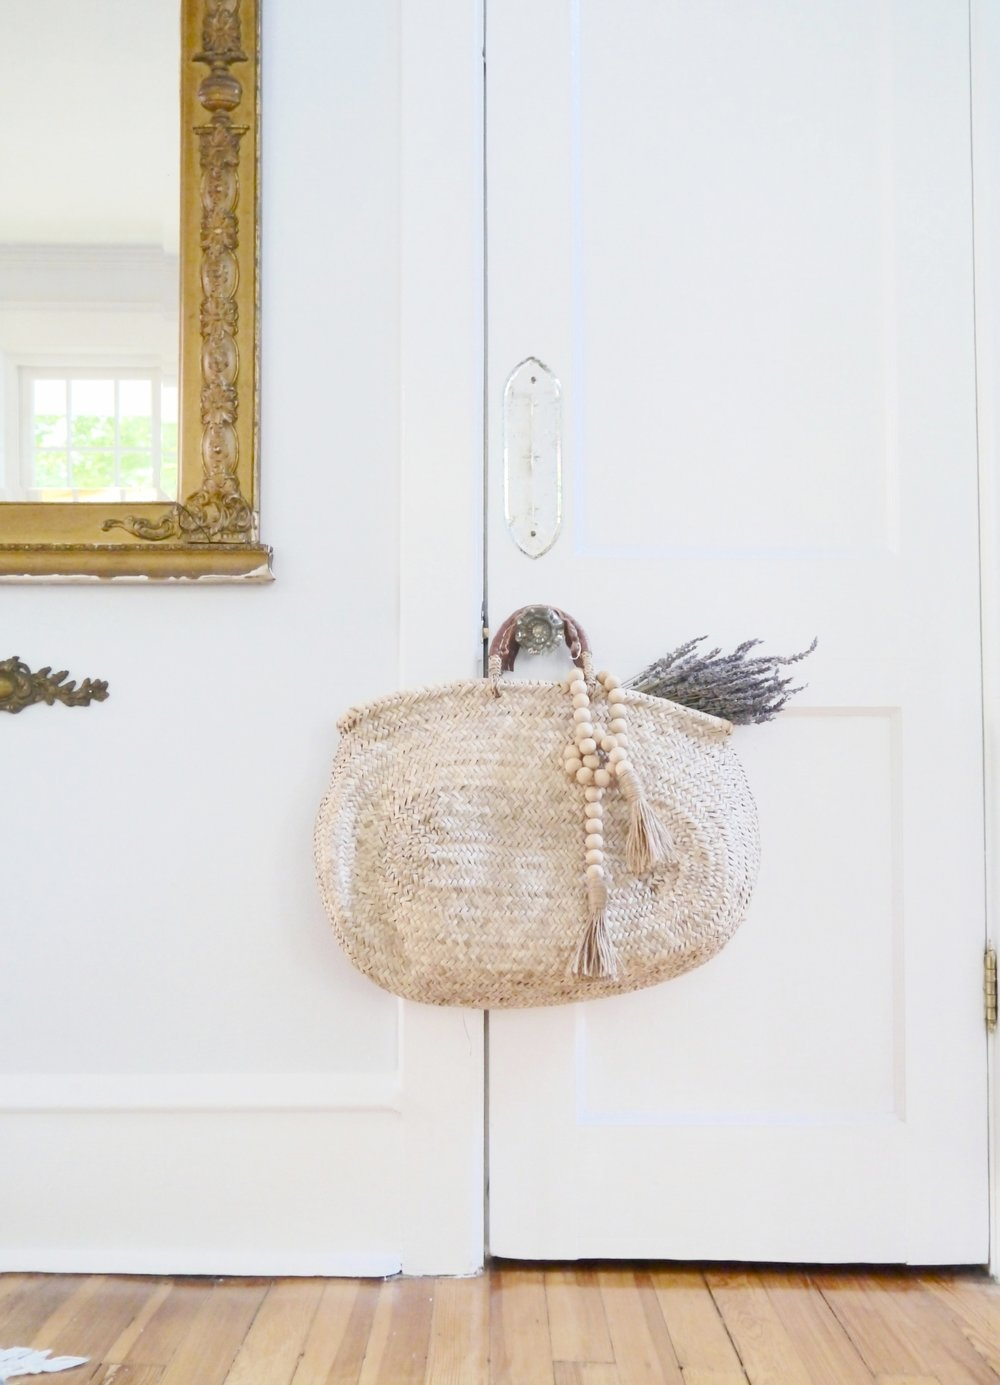 Vintage home decor styling service in South Jersey. Shop our showroom in Haddonfield, NJ for the best vintage home decor, furniture and accessories.